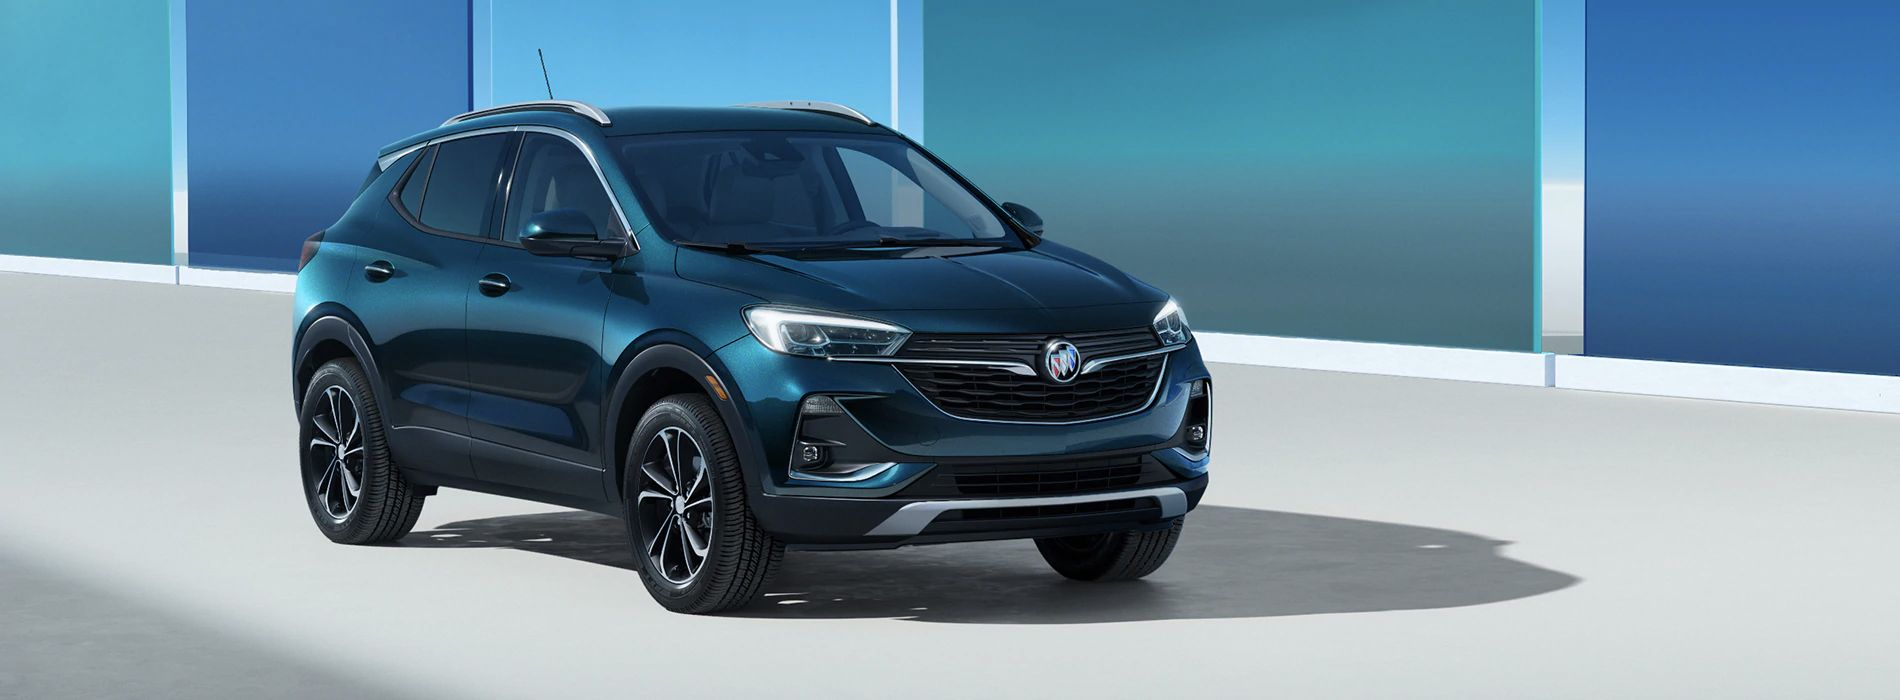 Comments On: 2020 Buick Encore Gx Priced Starting At $25000 New 2022 Buick Encore Gx Manual, Engine, Dimensions